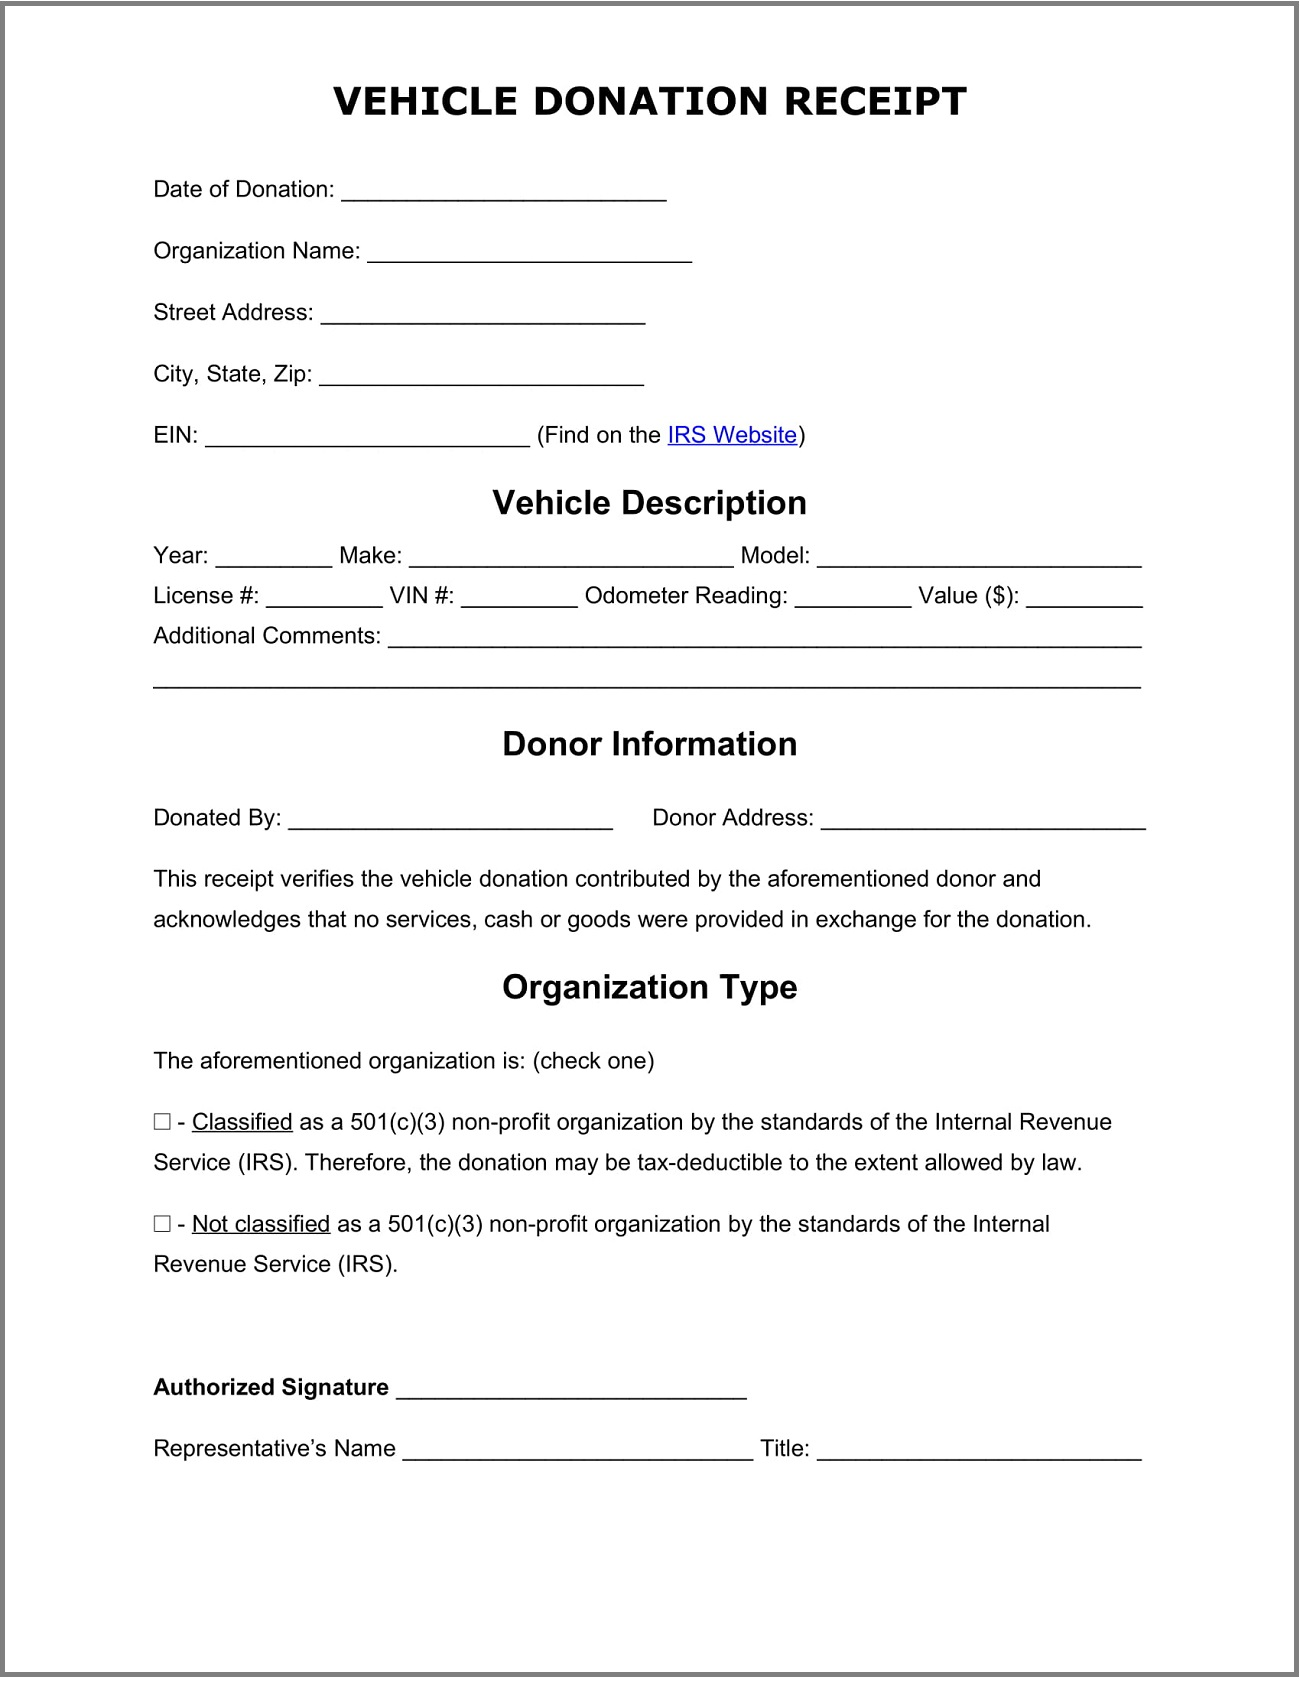 Vehicle Donation Receipt Template Word